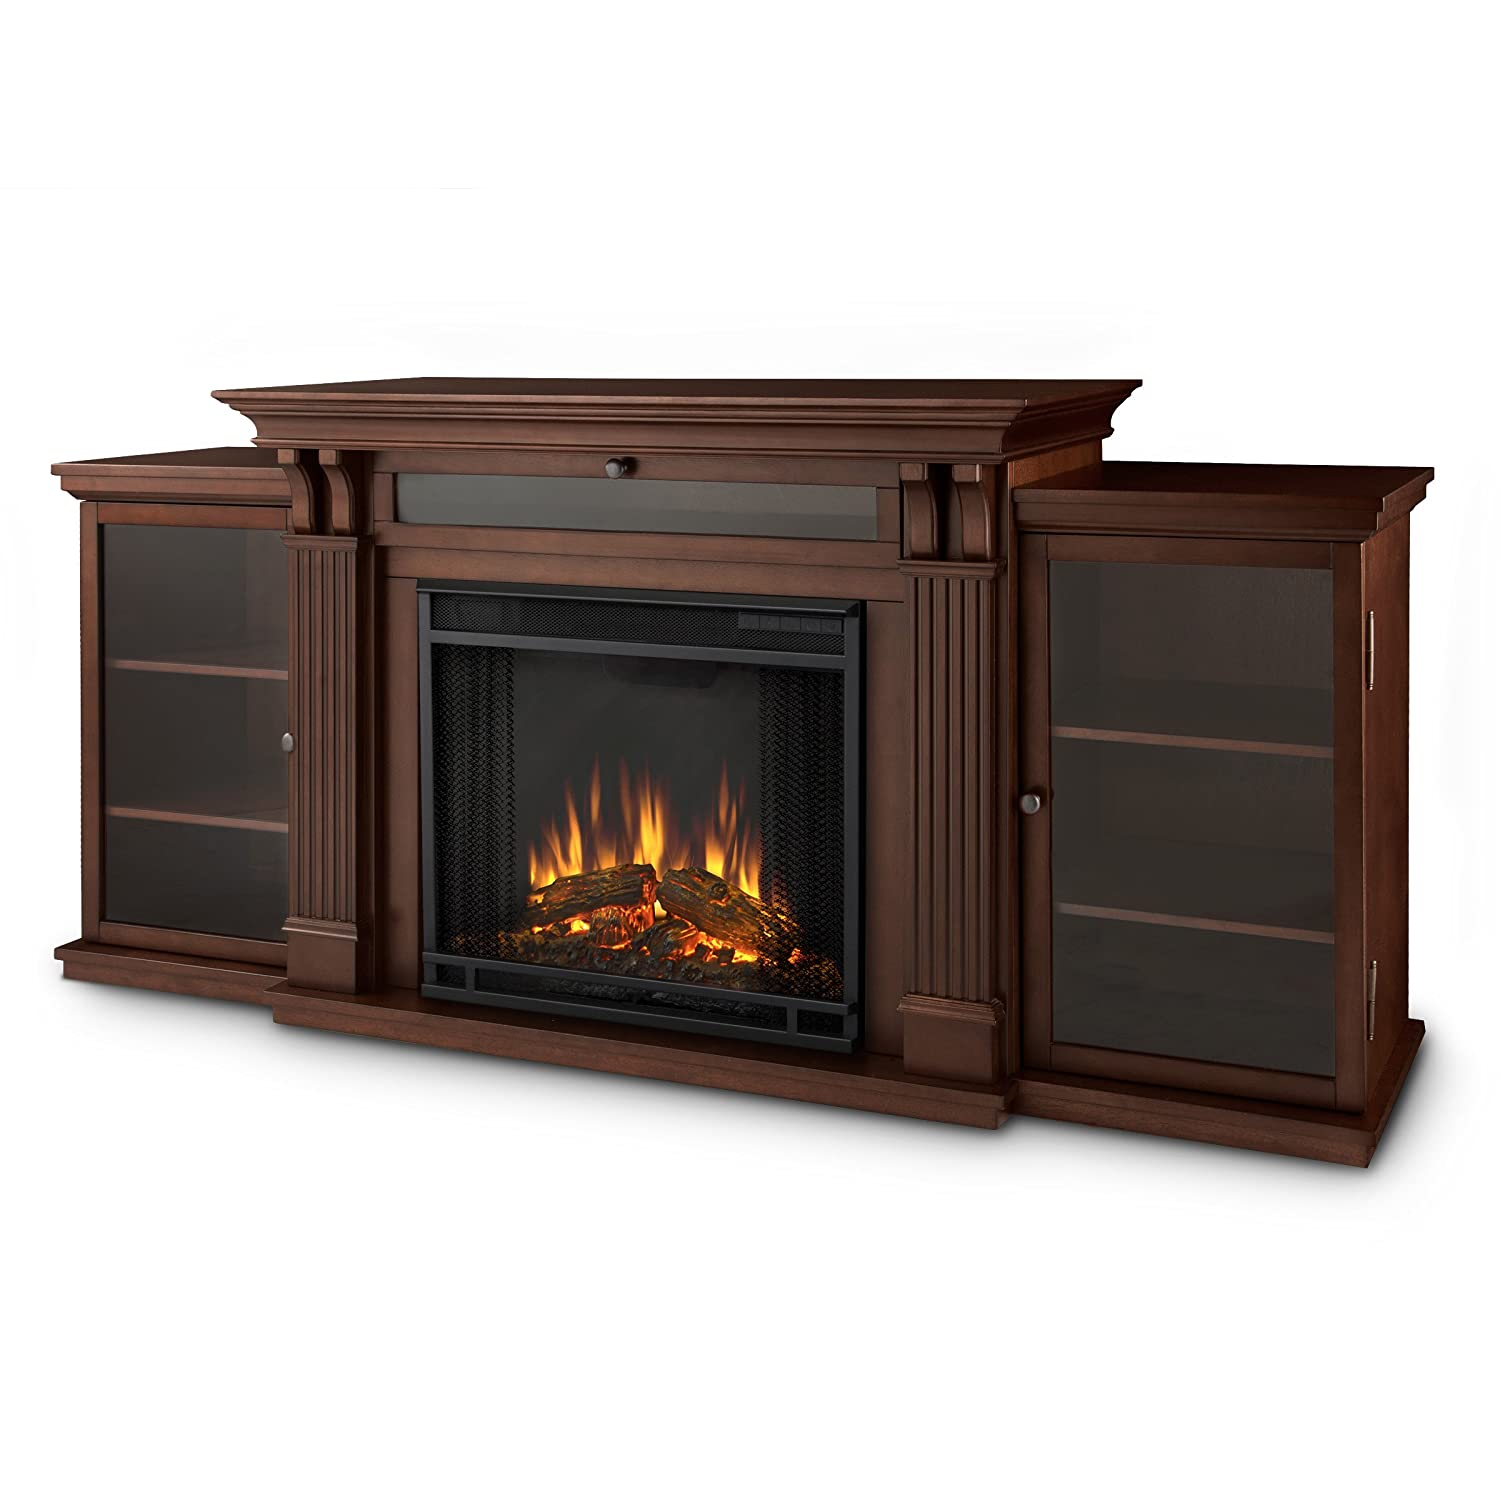 Real Flame Calie Entertainment Unit Electric Fireplace, Espresso